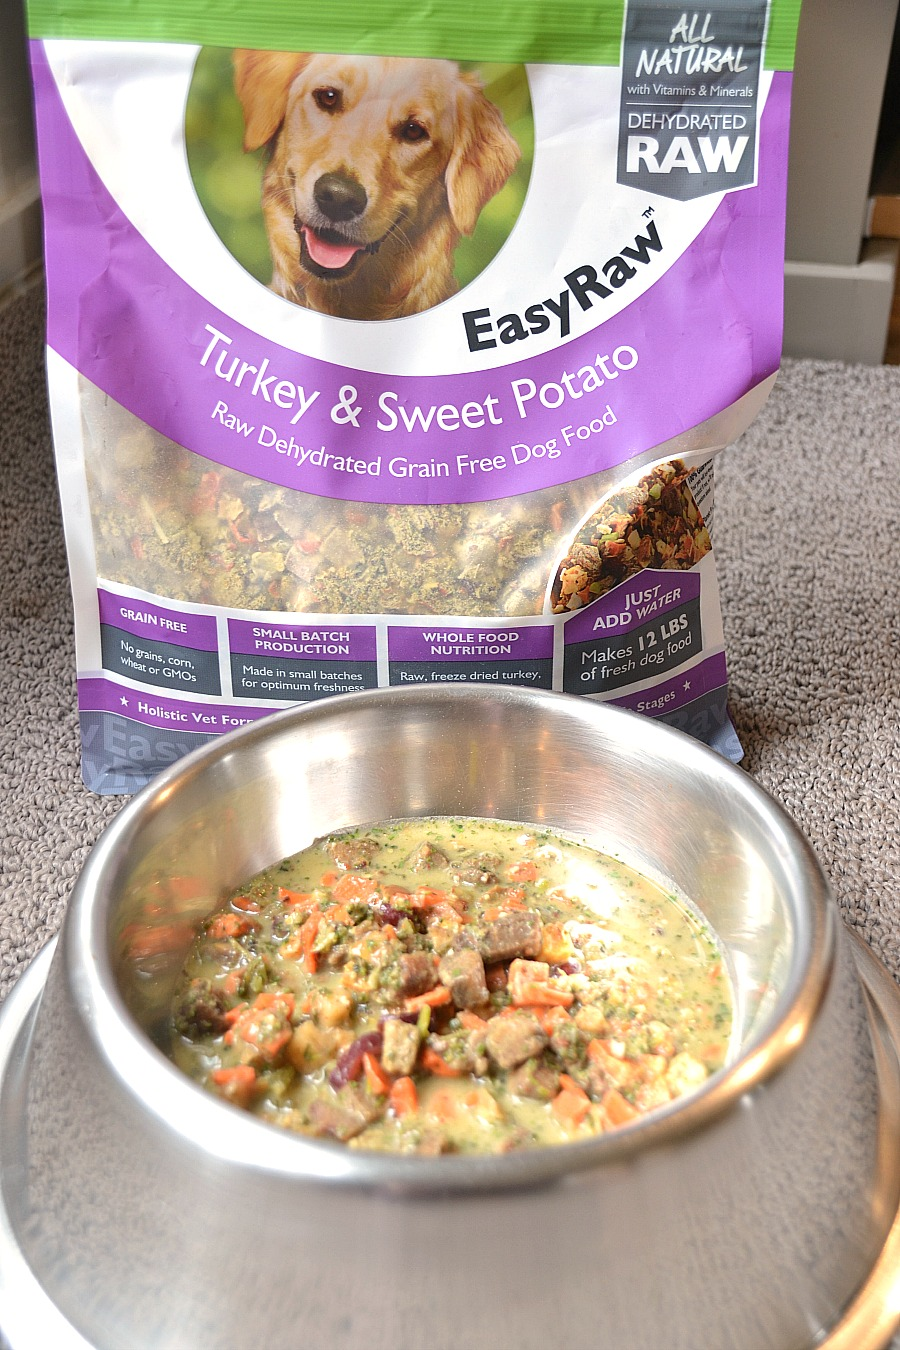 All natural pet food, holistic pet food, healthy pet food, all-natural pet food, Only Natural Pet - Easy Raw, sponsored